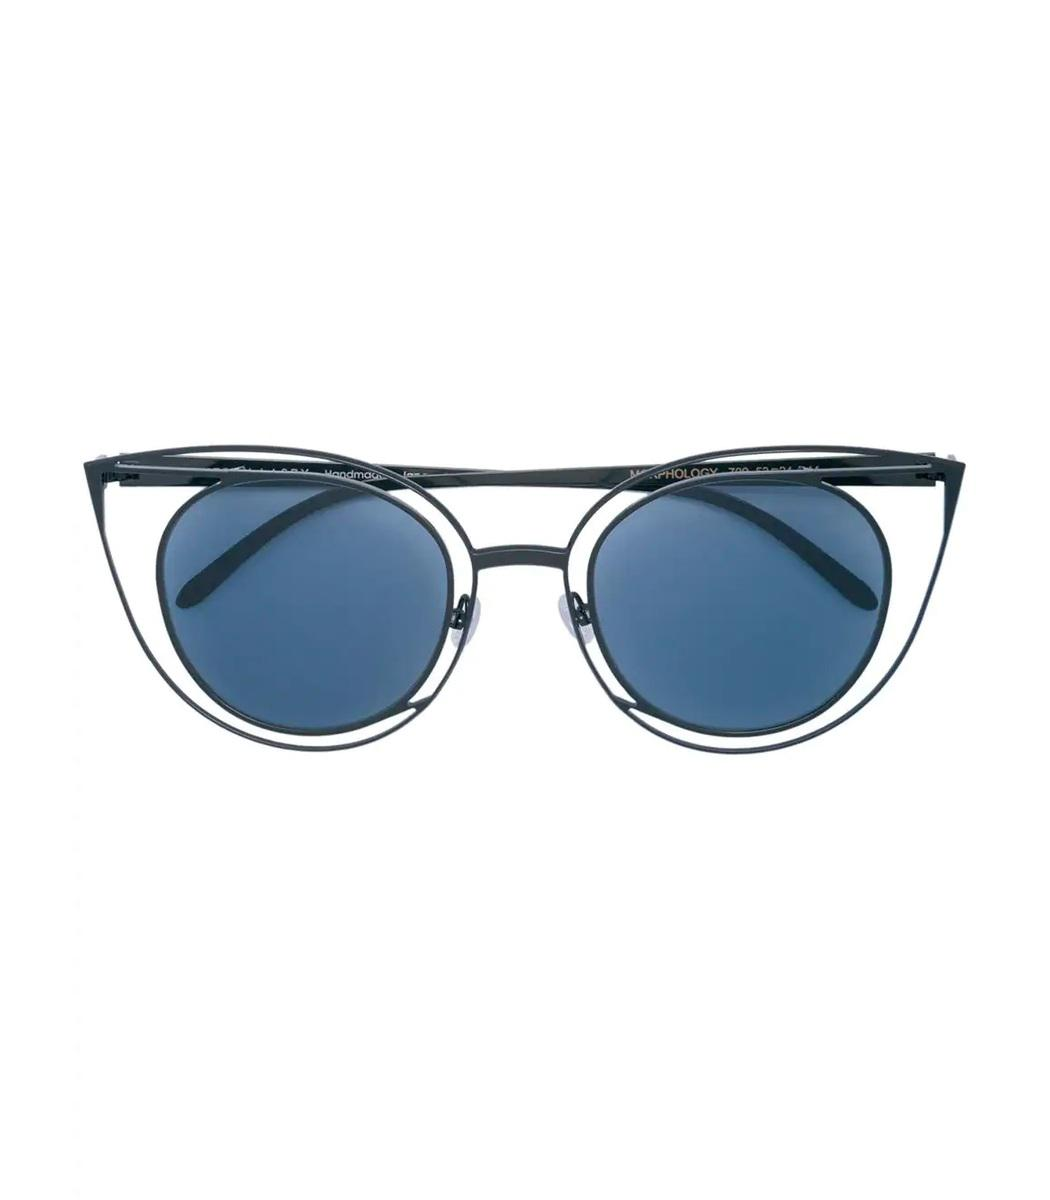 eb9e0e4bfc Lyst - Thierry Lasry Morphology Cat Eye Sunglasses in Metallic